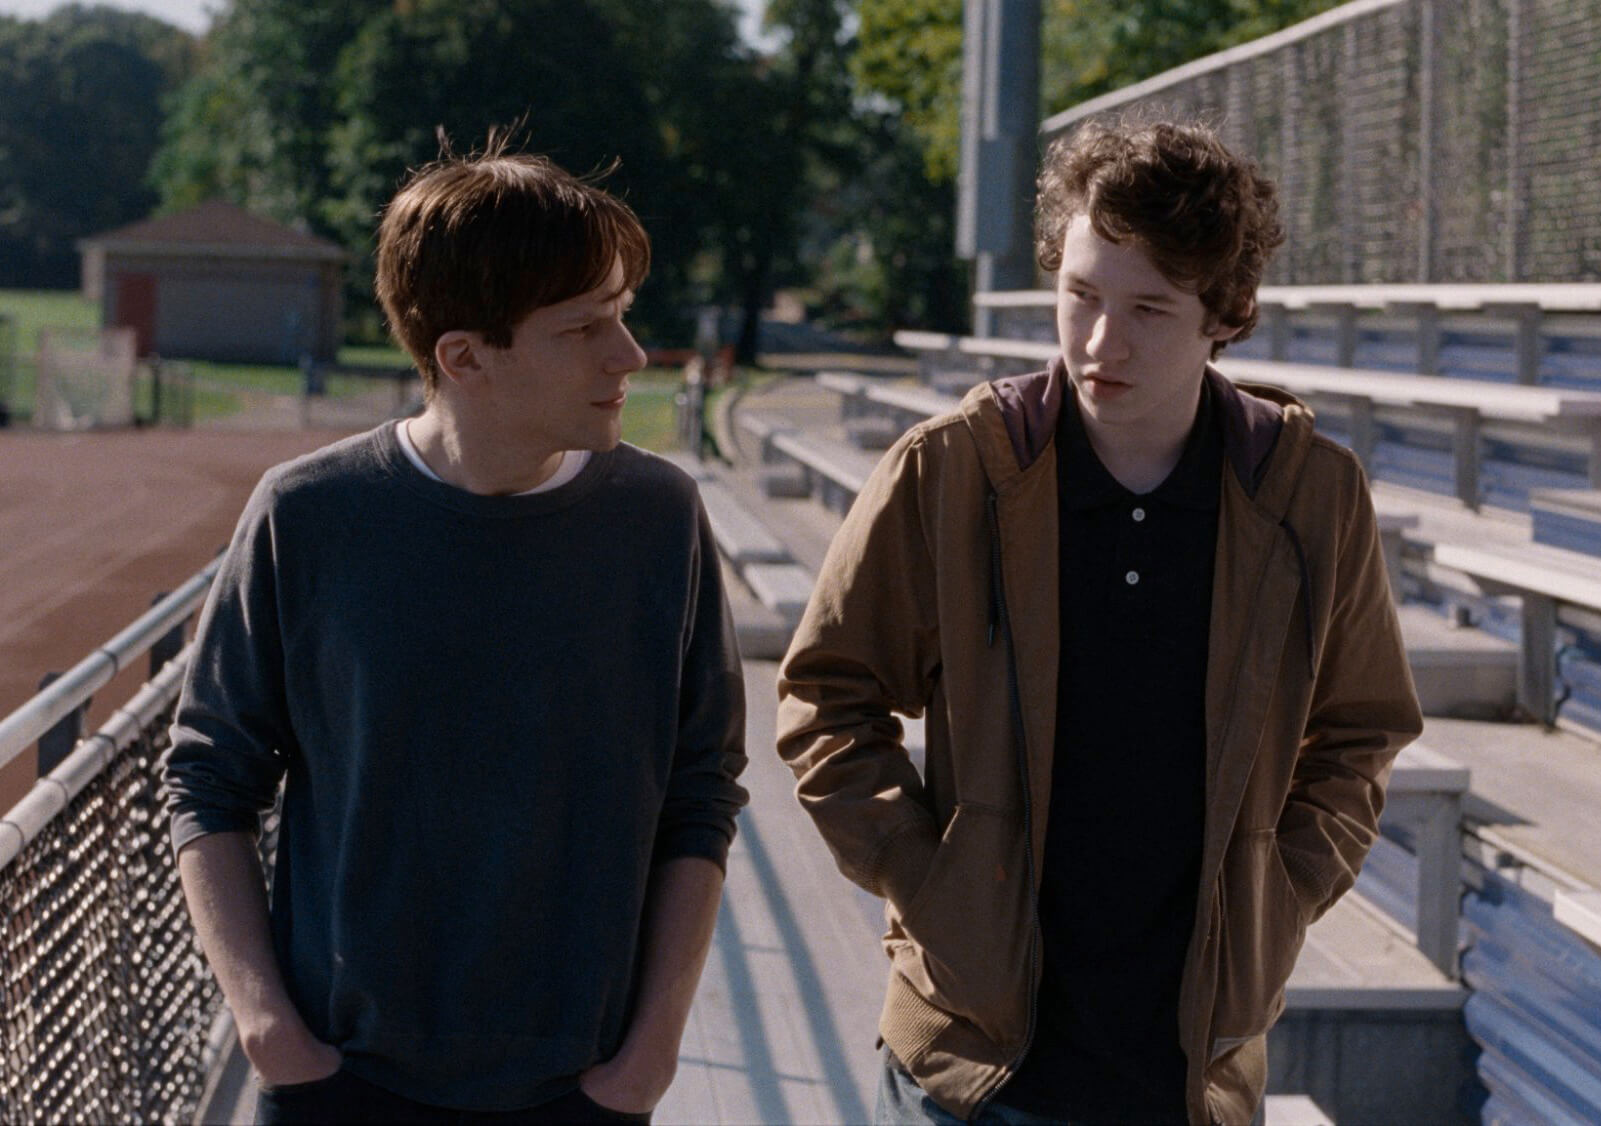 Video still from Louder Than Bombs